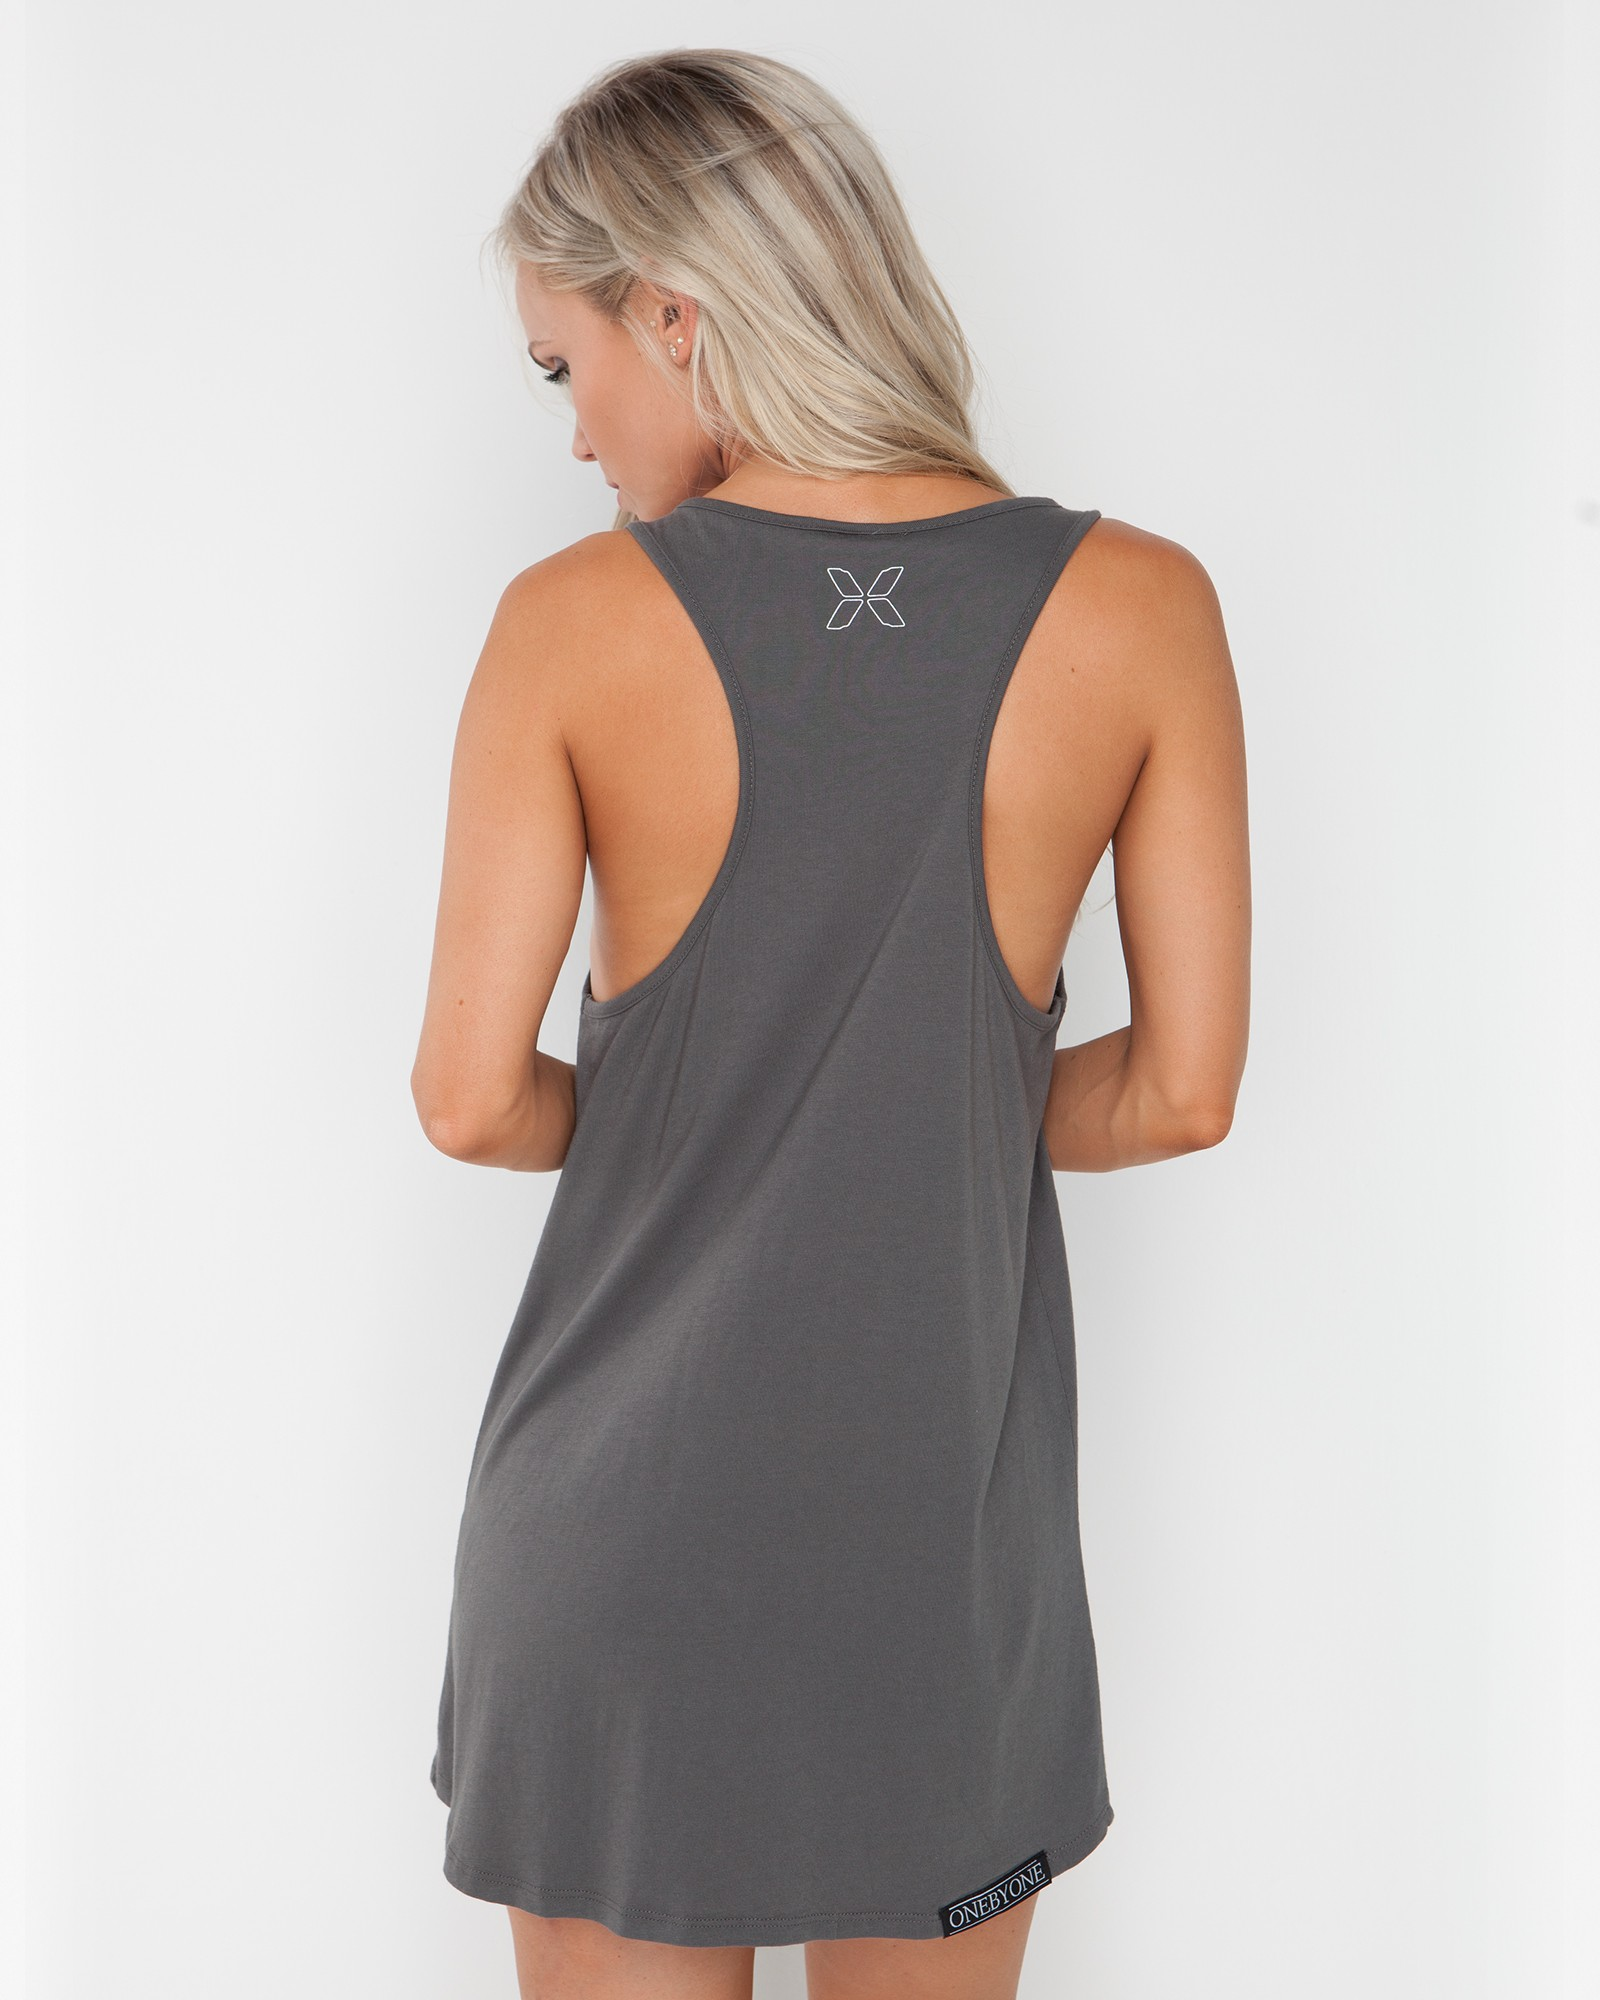 DREAMING EMOTION DARK GREY SINGLET